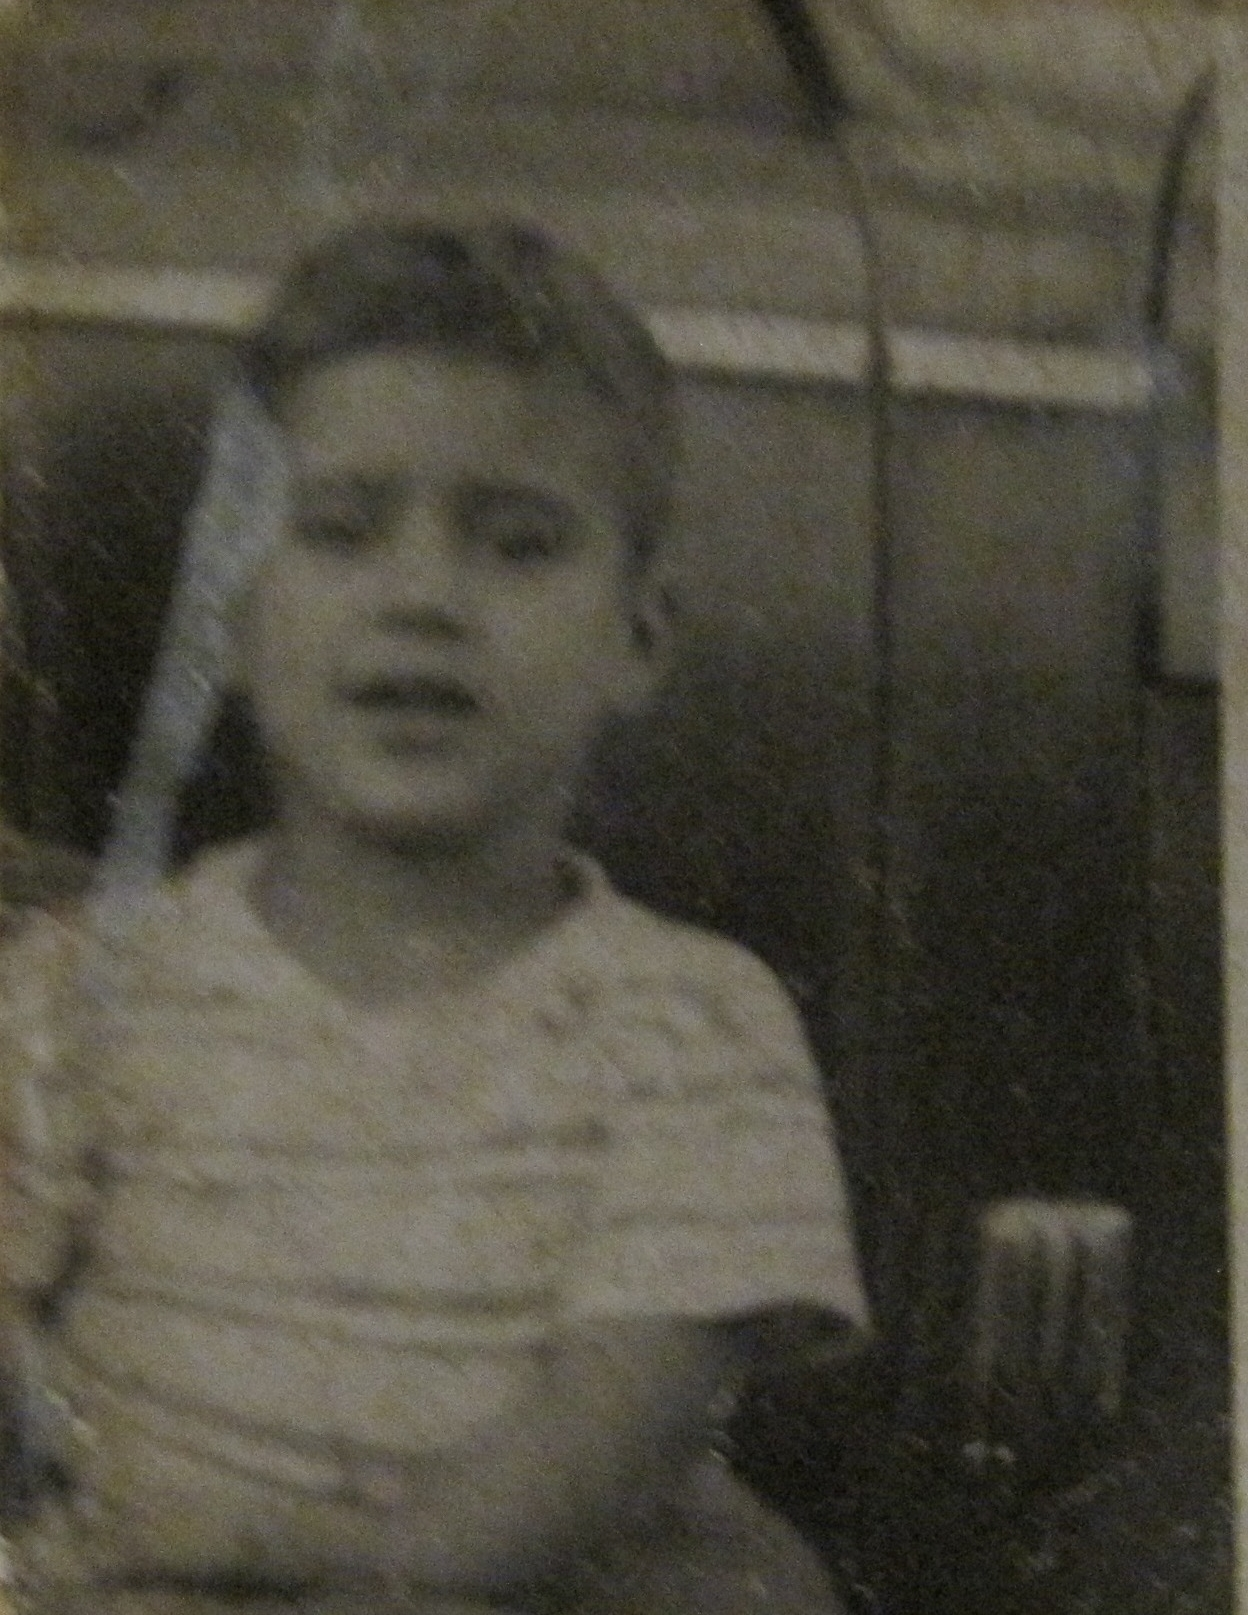 Bobby, 4 years old